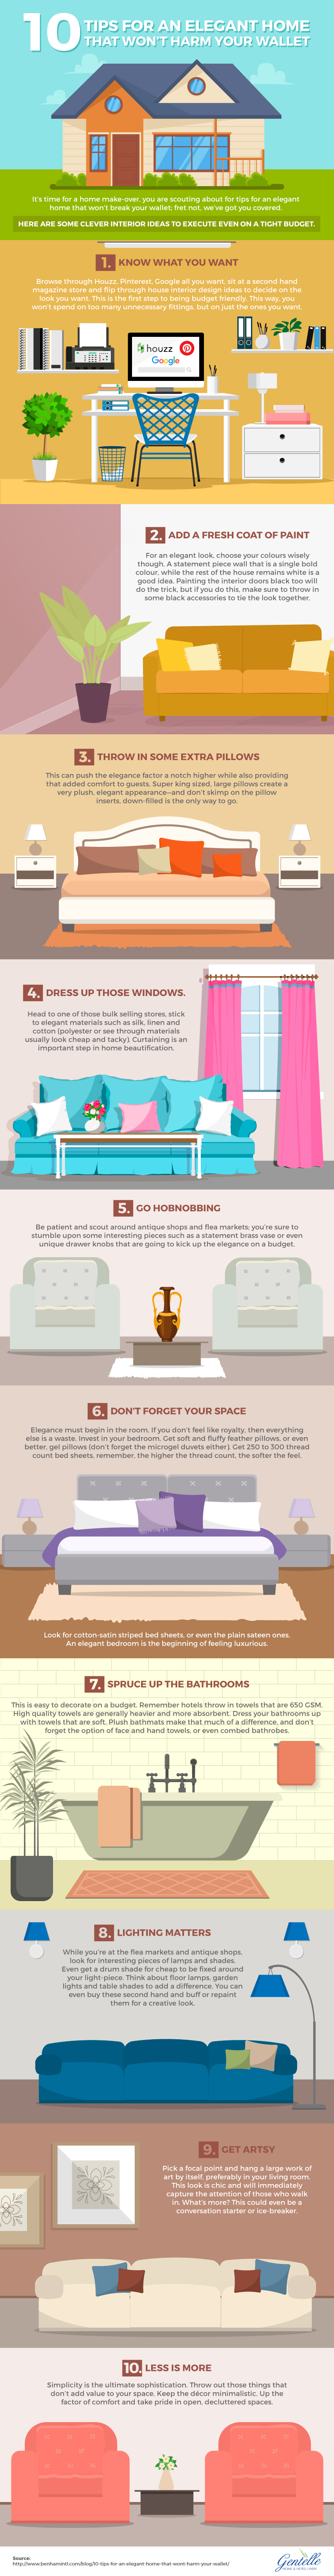 10-tips-for-an-elegant-home-that-wont-harm-your-wallet_Infographic